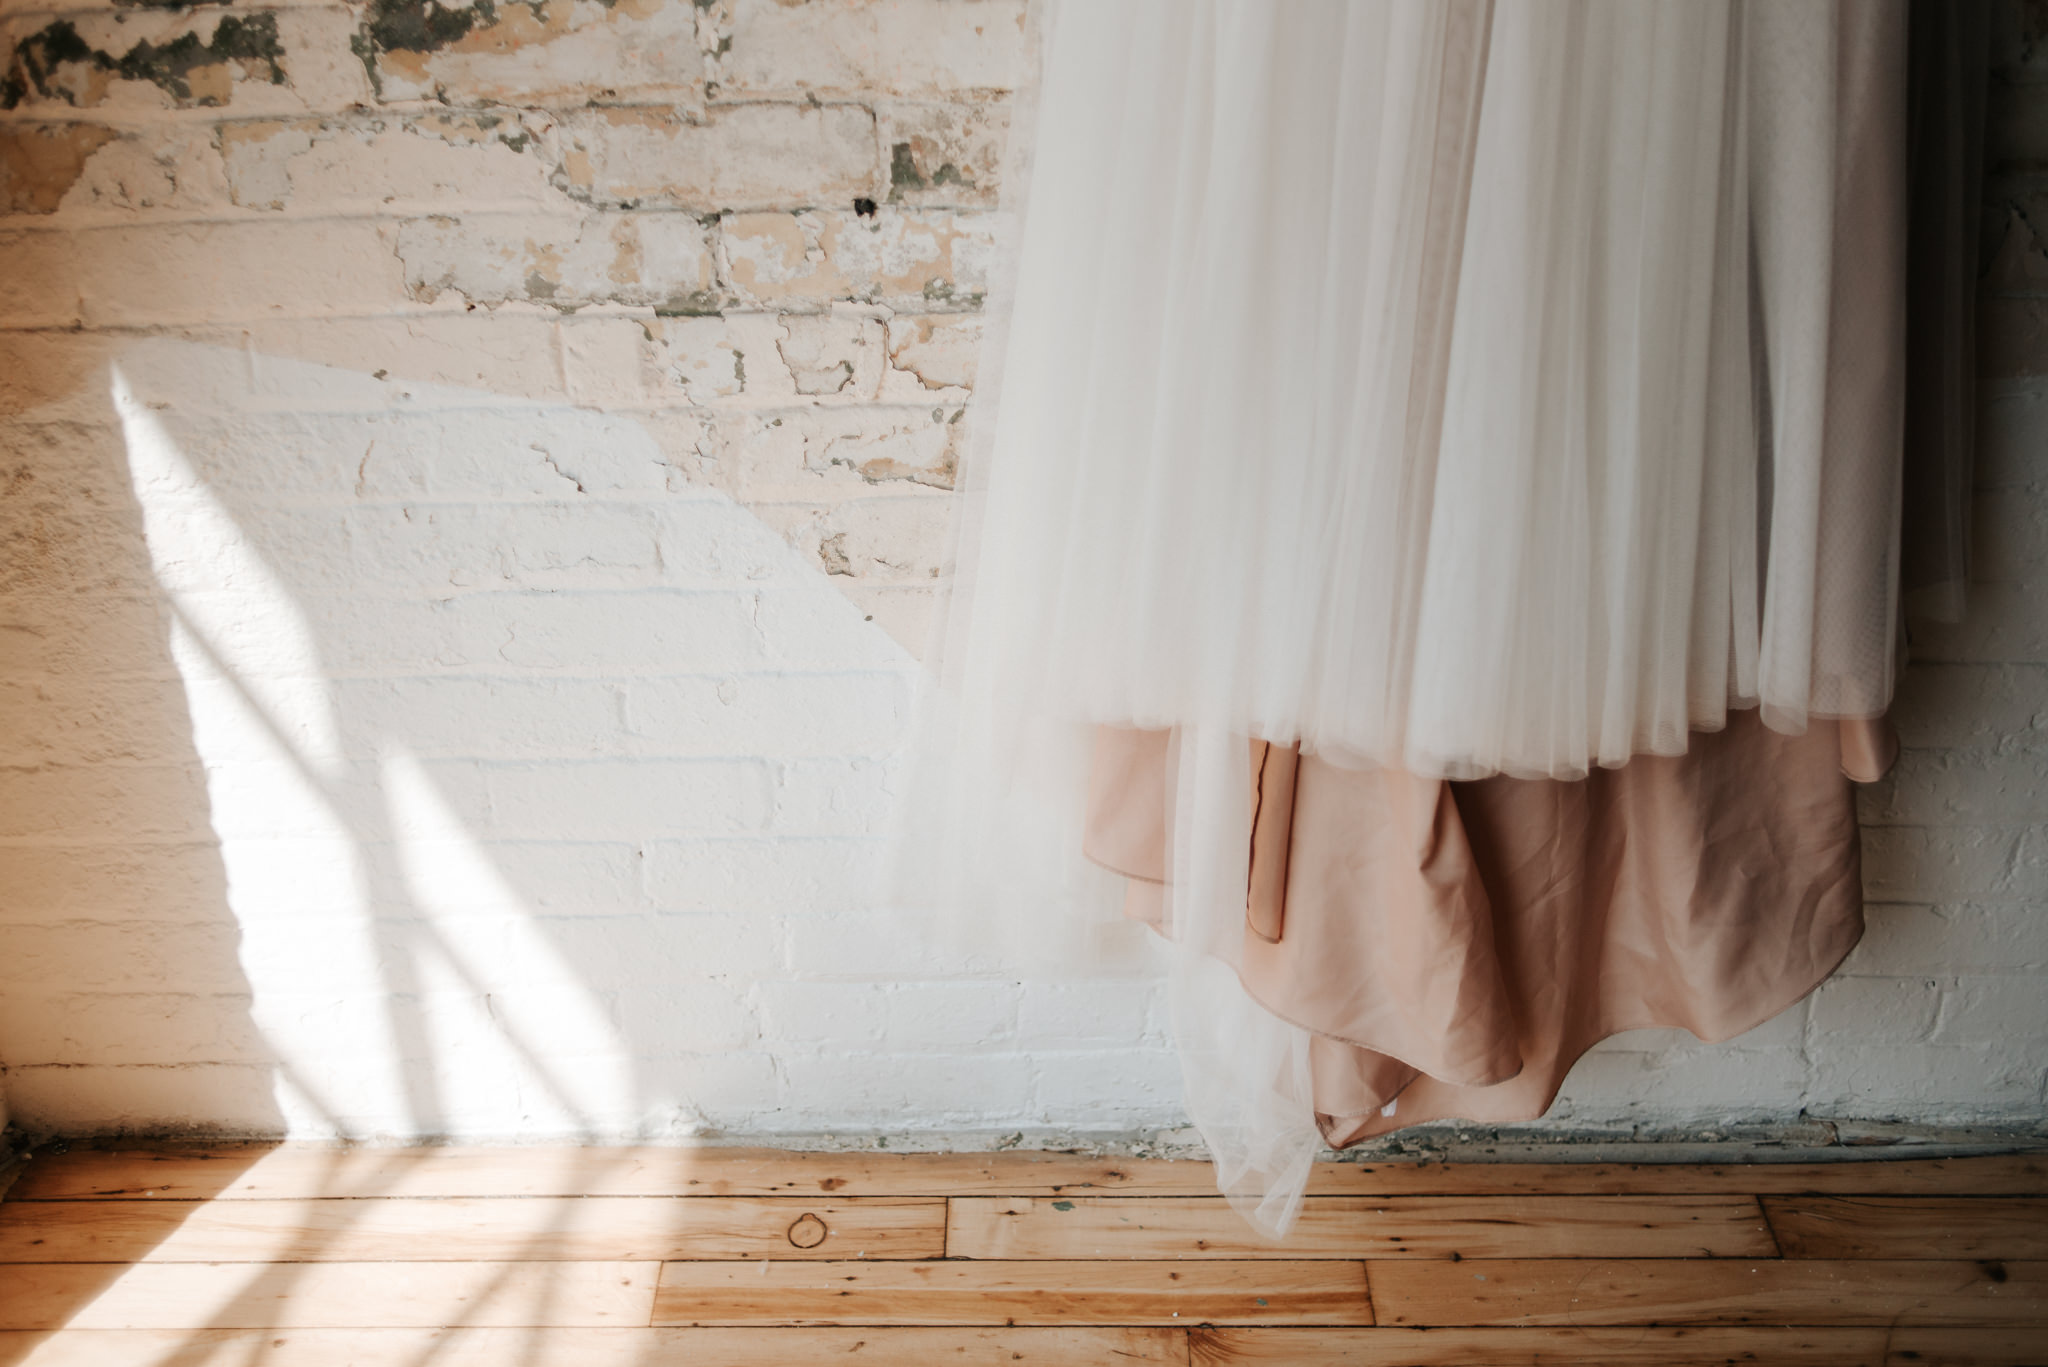 wedding dress hanging on brick wall and old wood floors of loft